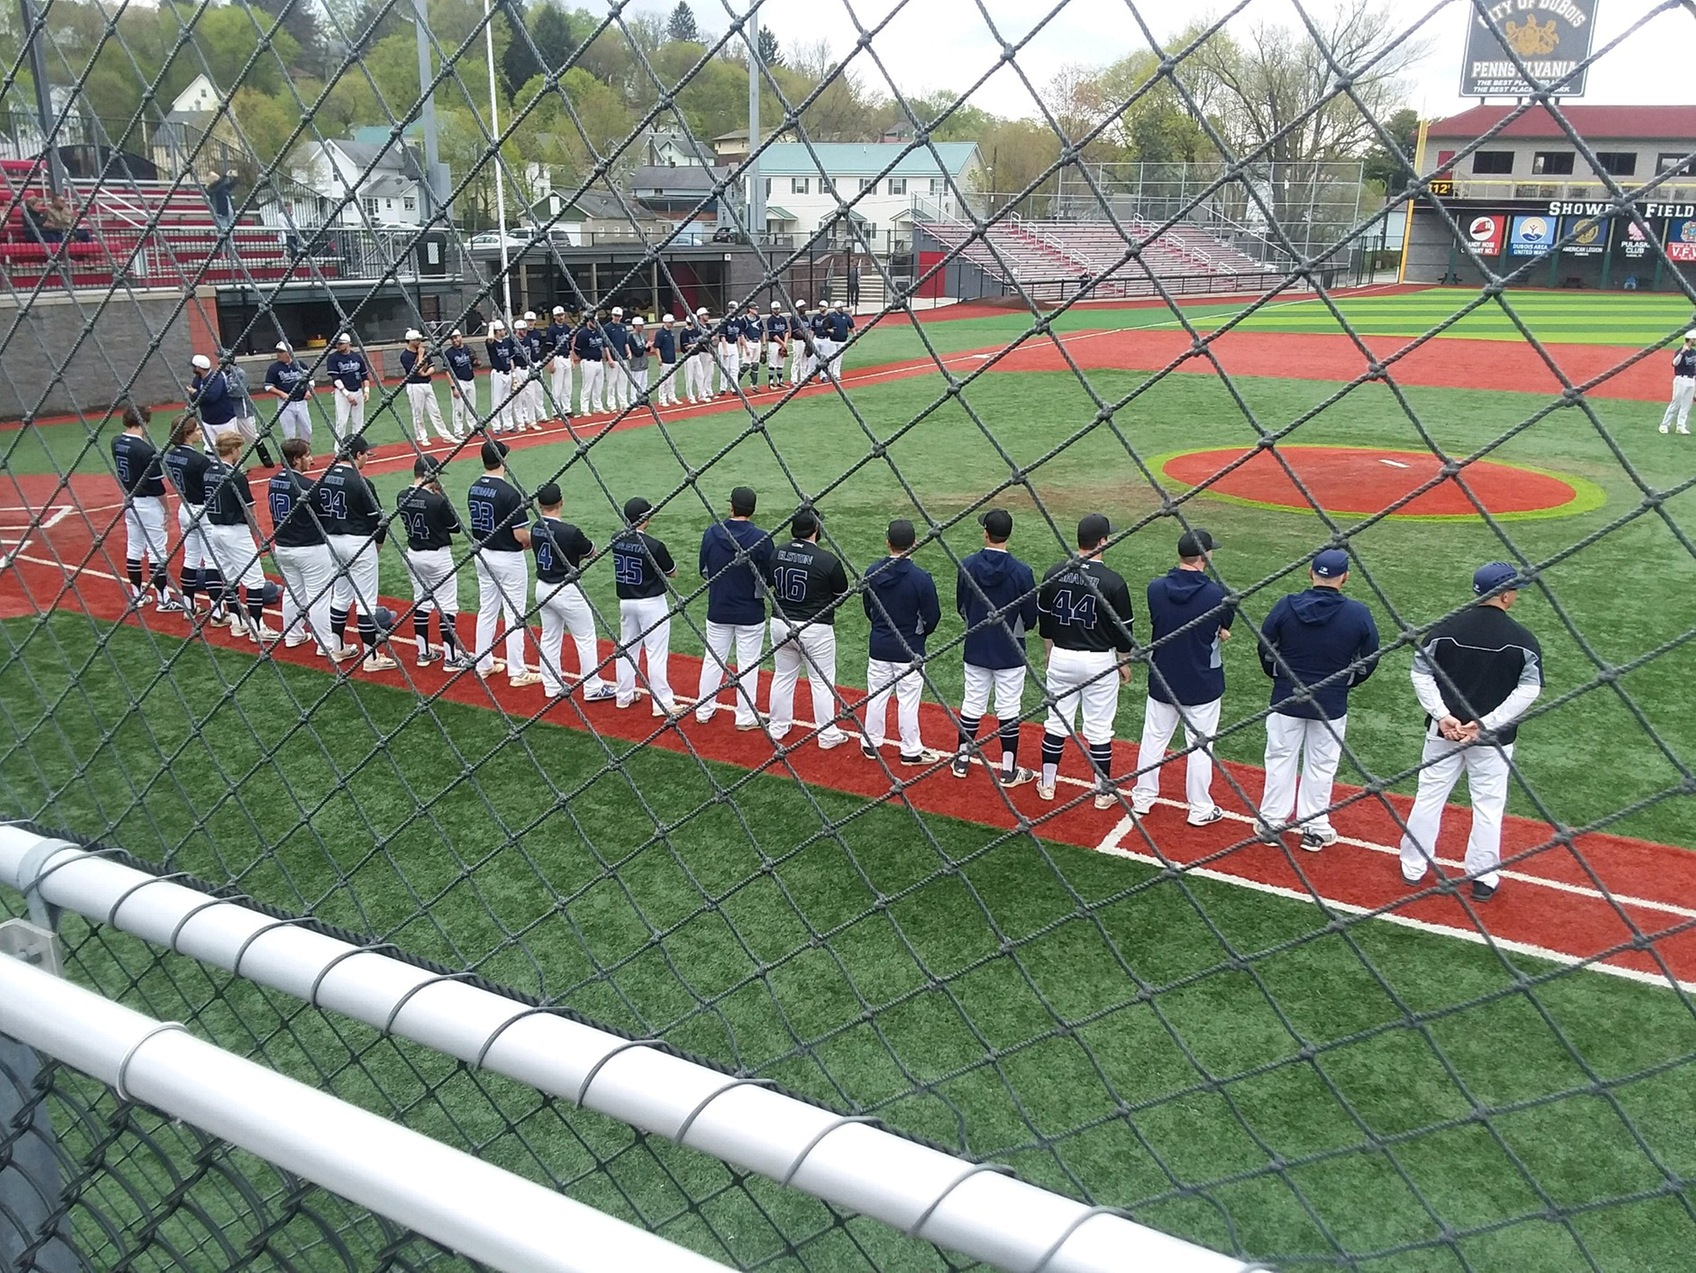 Baseball Set For Double Header Against Southern Maine CC At Home